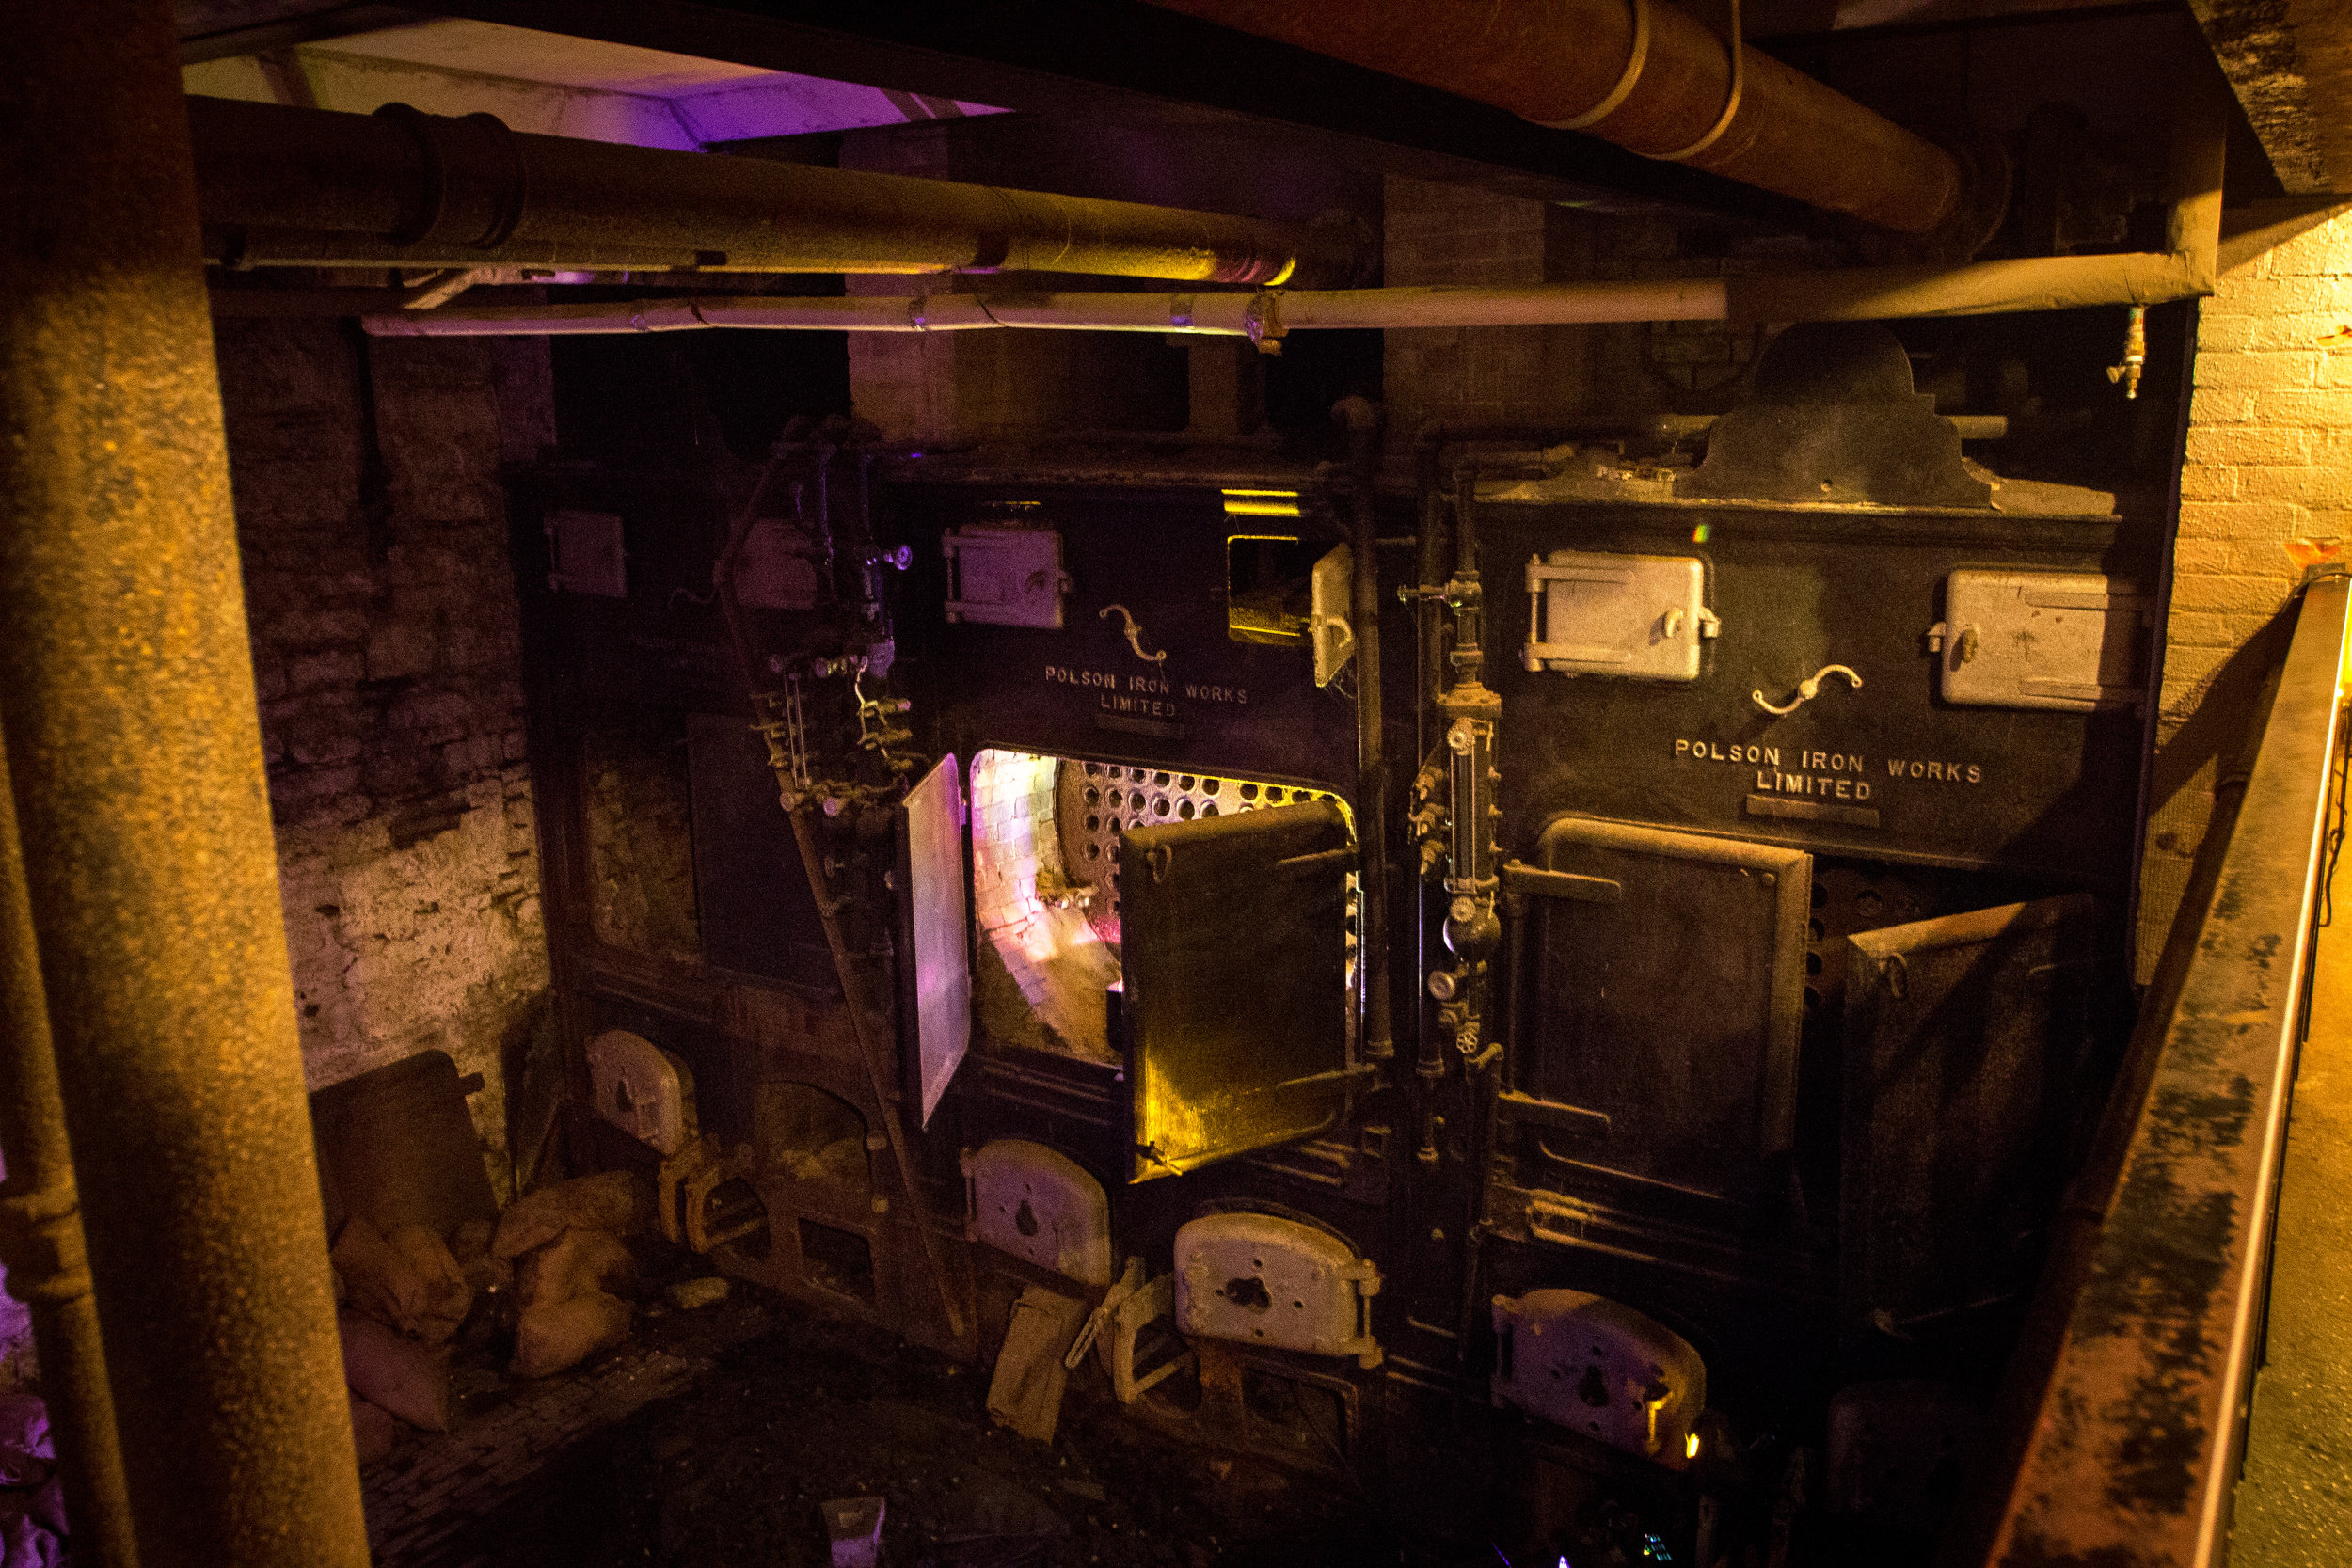 The boiler room that was in the secret tunnel